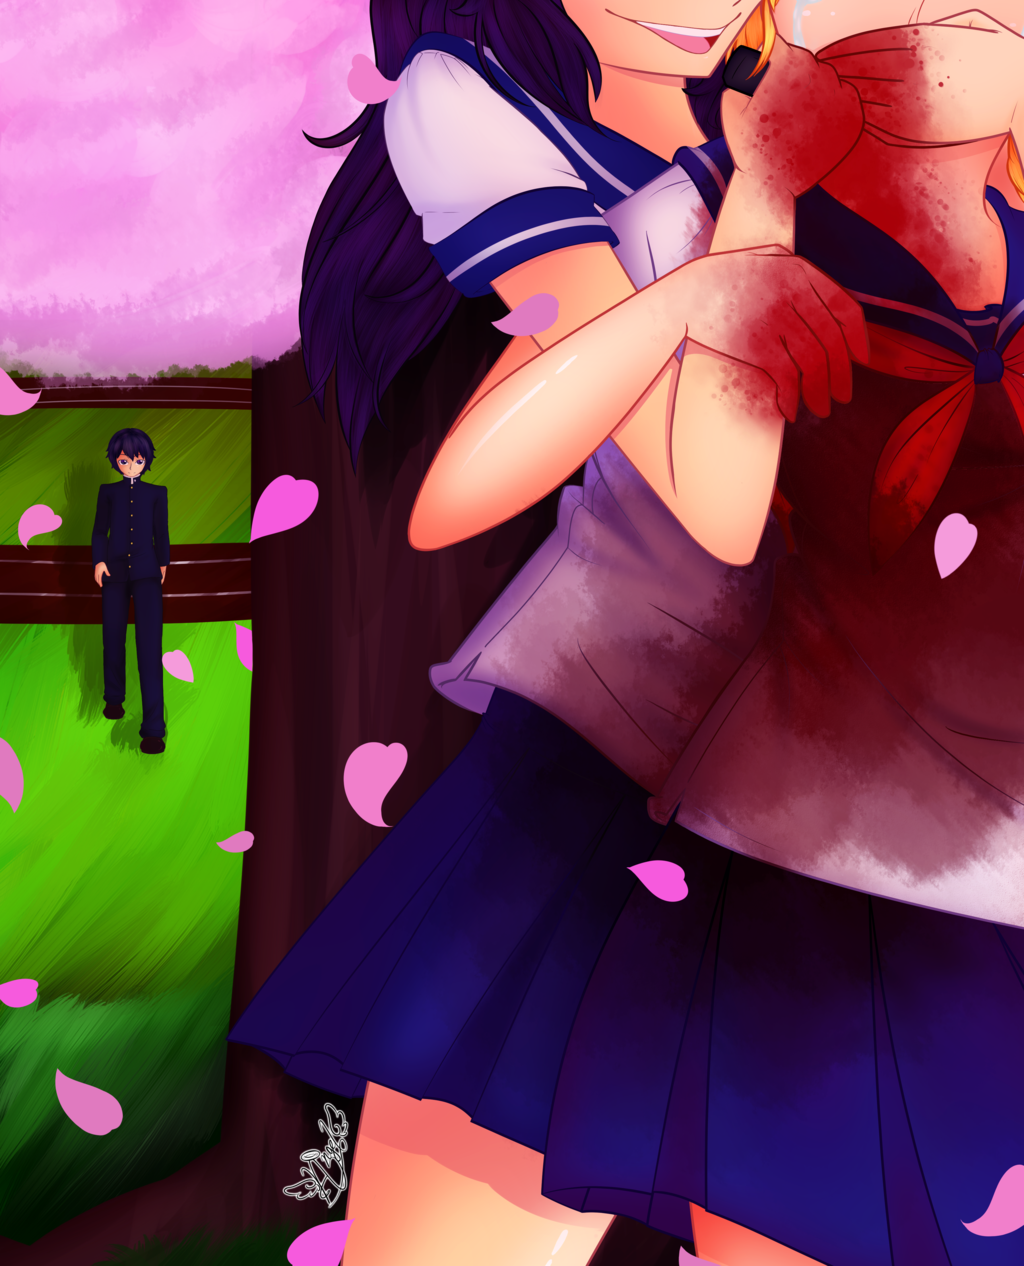 In The Shadows Of The Cherry Blossom Tree Yandere Simulator Yandere Cherry Blossom Tree